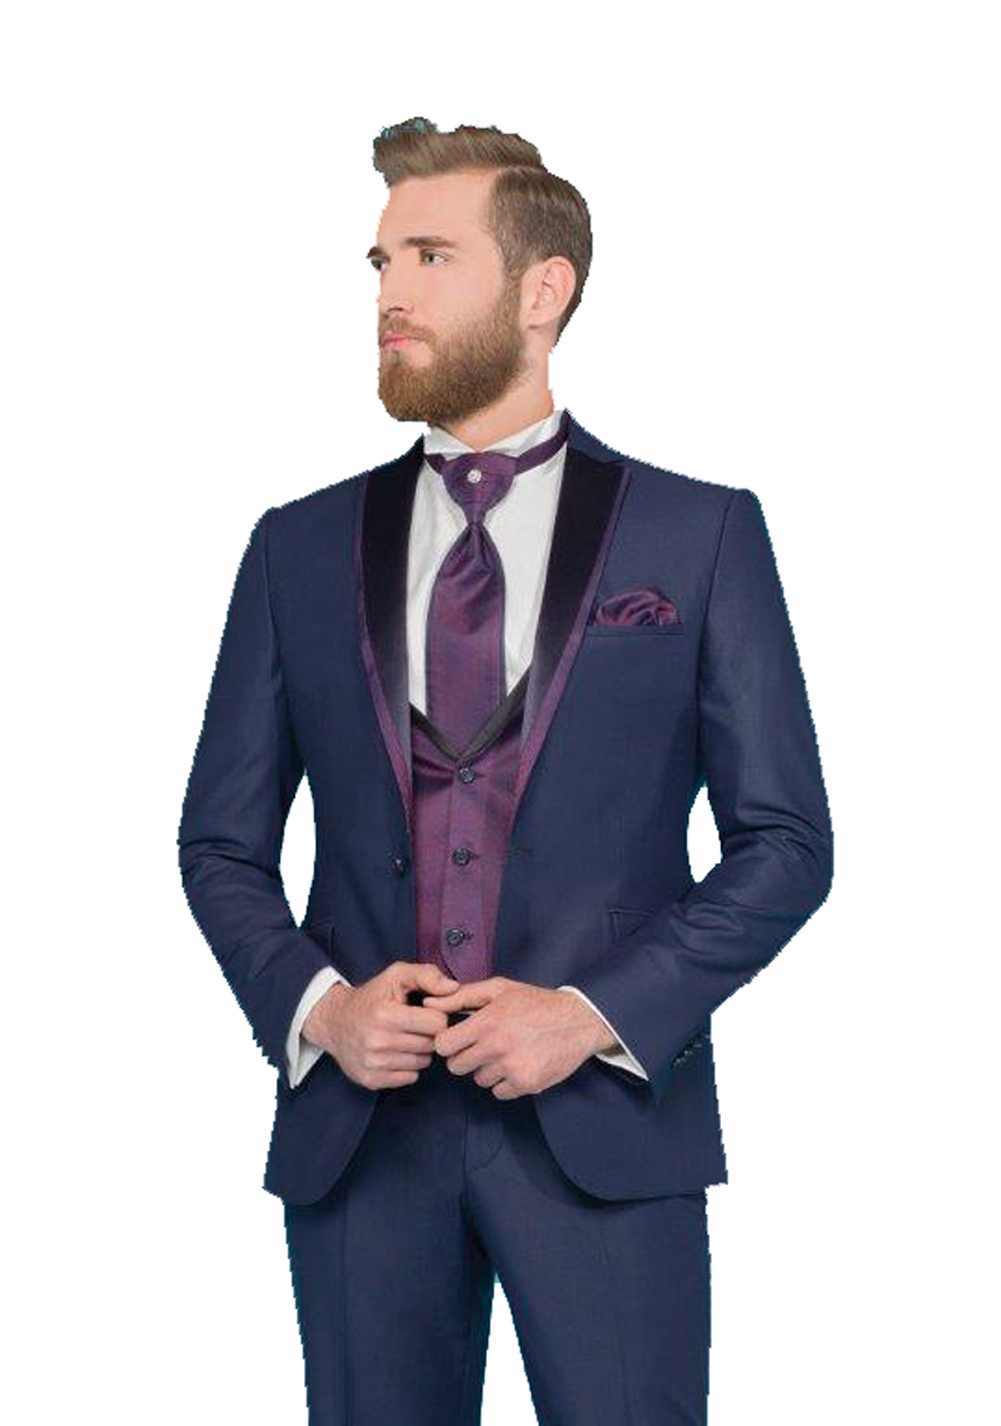 Muga Wedding Suit Fine Muga Wedding